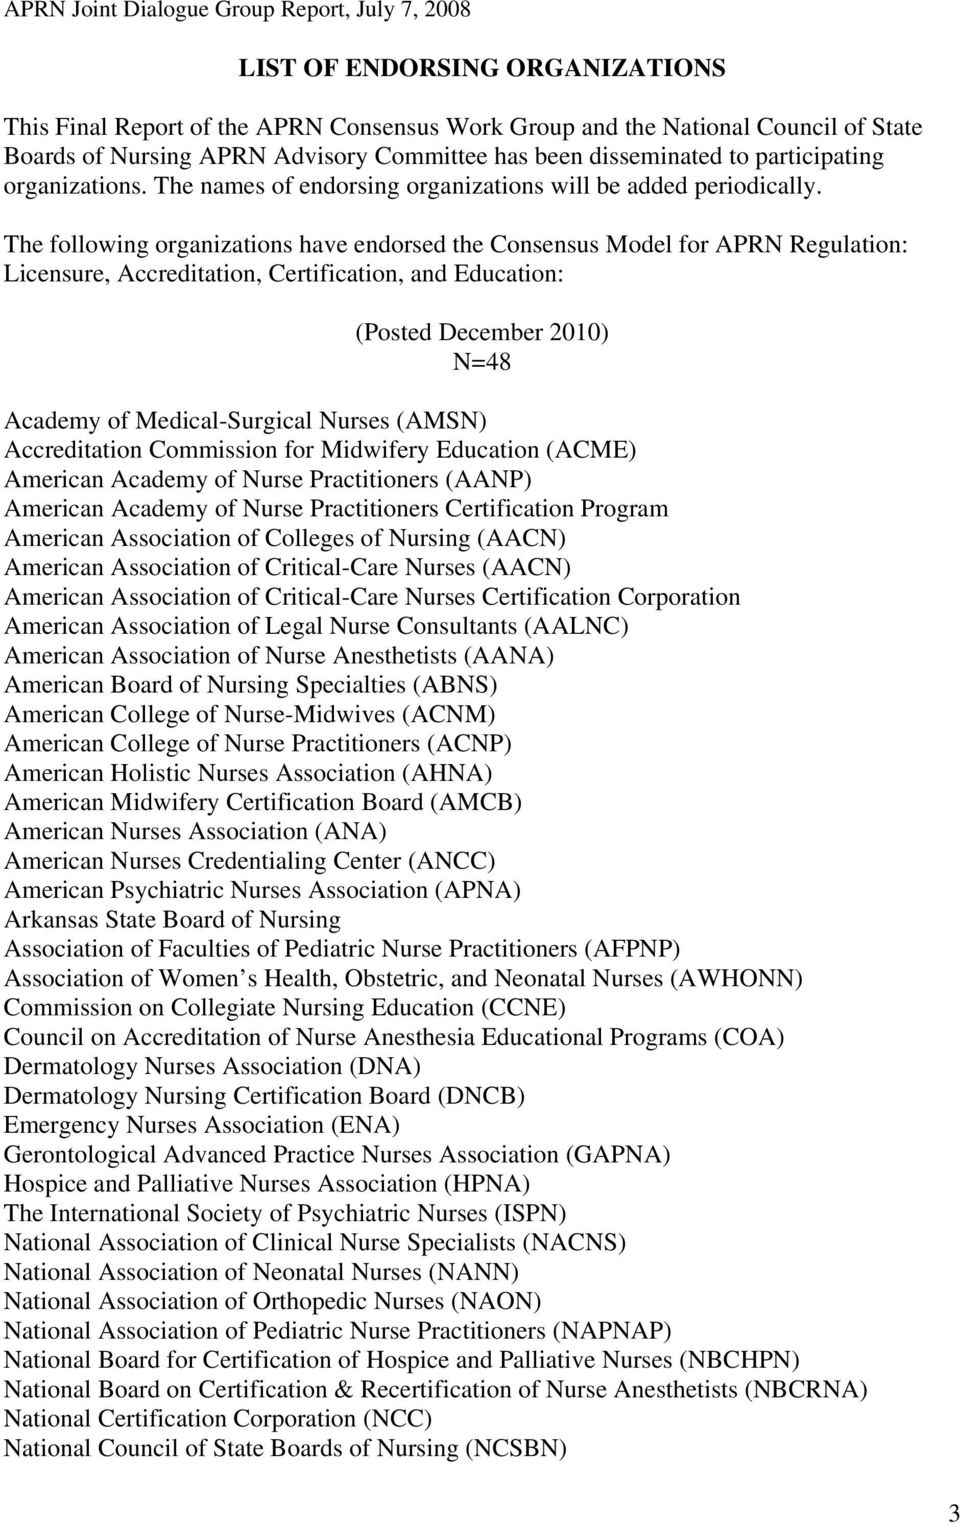 The following organizations have endorsed the Consensus Model for APRN Regulation: Licensure, Accreditation, Certification, and Education: (Posted December 2010) N=48 Academy of Medical-Surgical